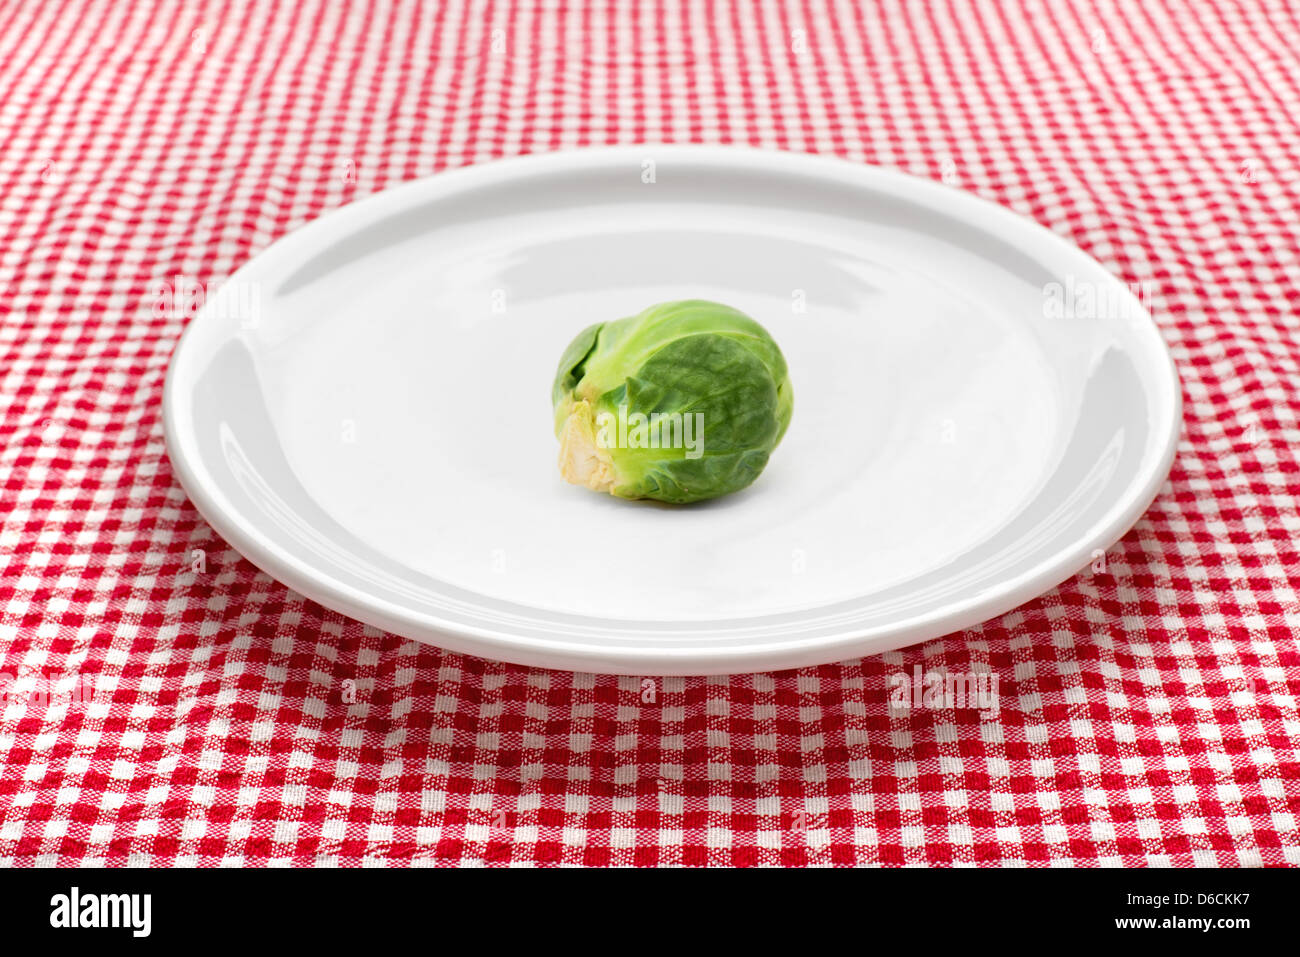 Raw brussels sprouts on white plate on kitchen table, red and white checkered tablecloth in background. - Stock Image